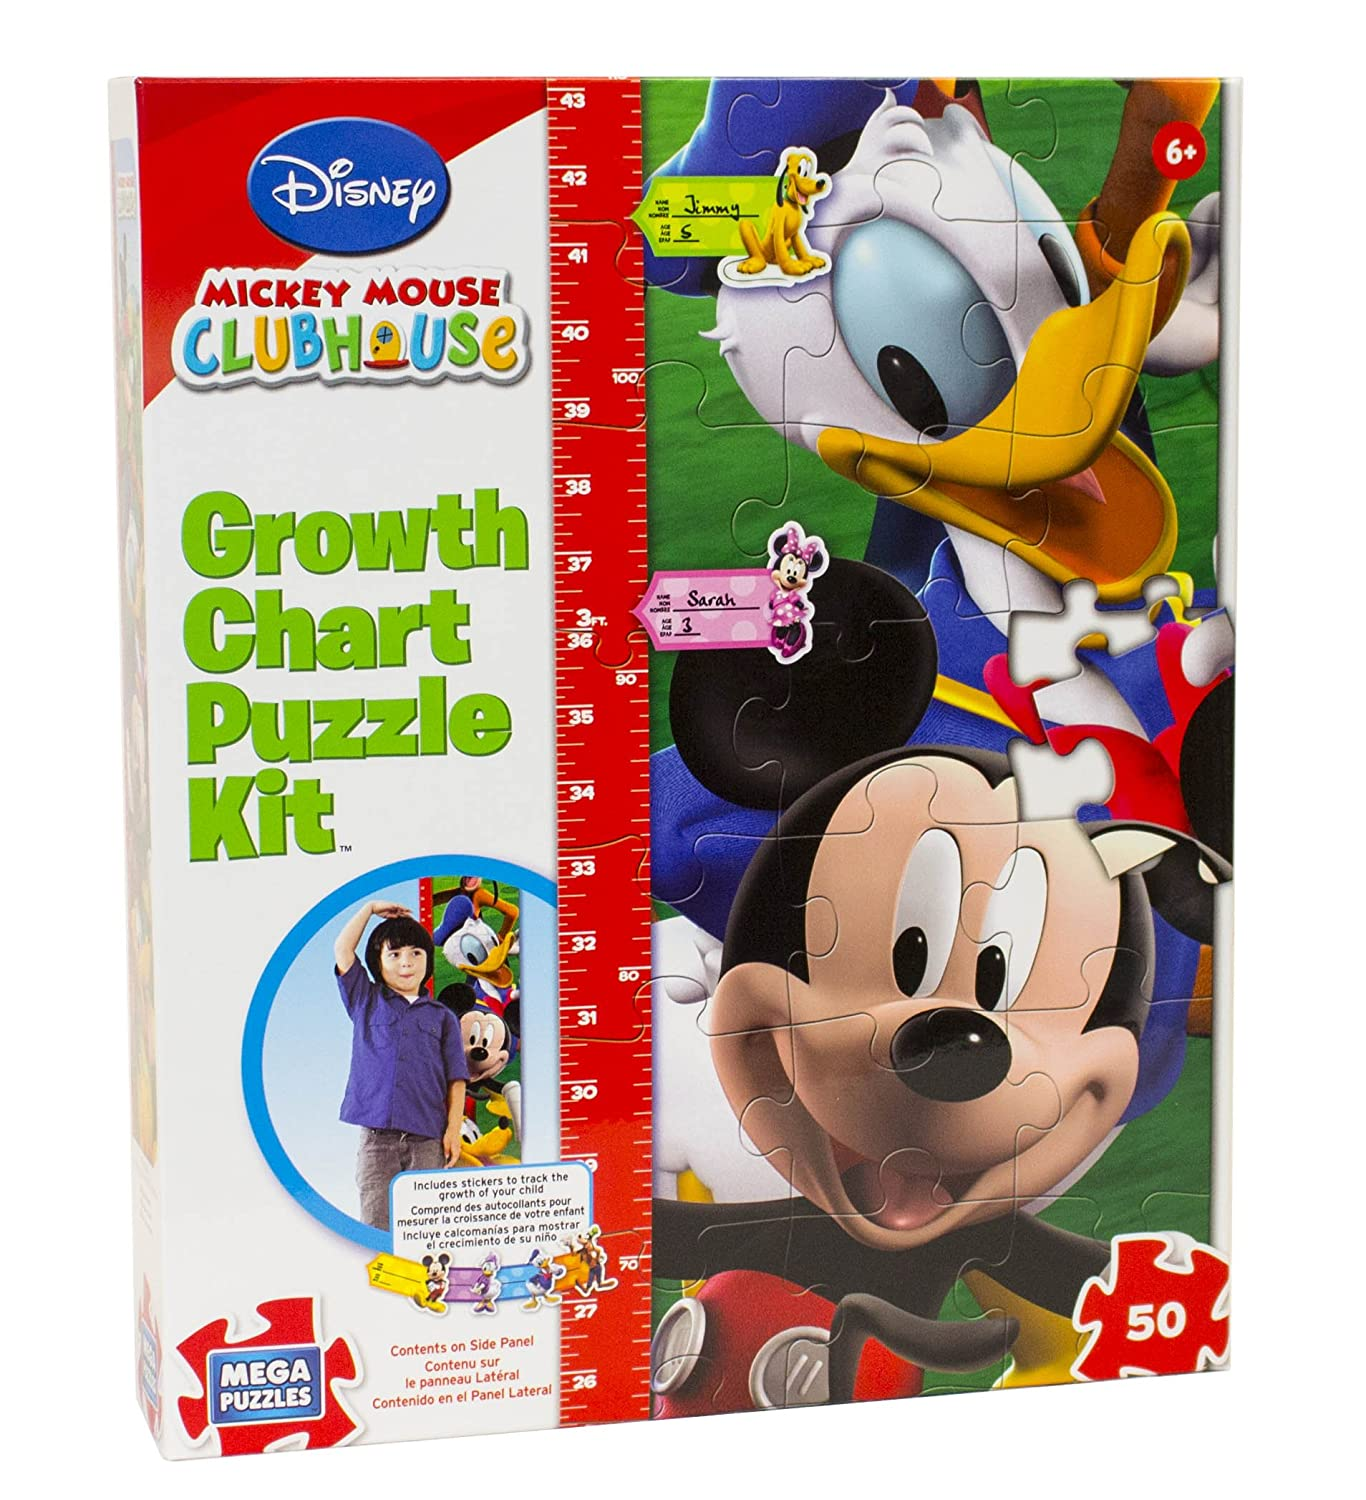 Amazon disney mickey mouse clubhouse growth chart puzzle kit amazon disney mickey mouse clubhouse growth chart puzzle kit toys games nvjuhfo Image collections